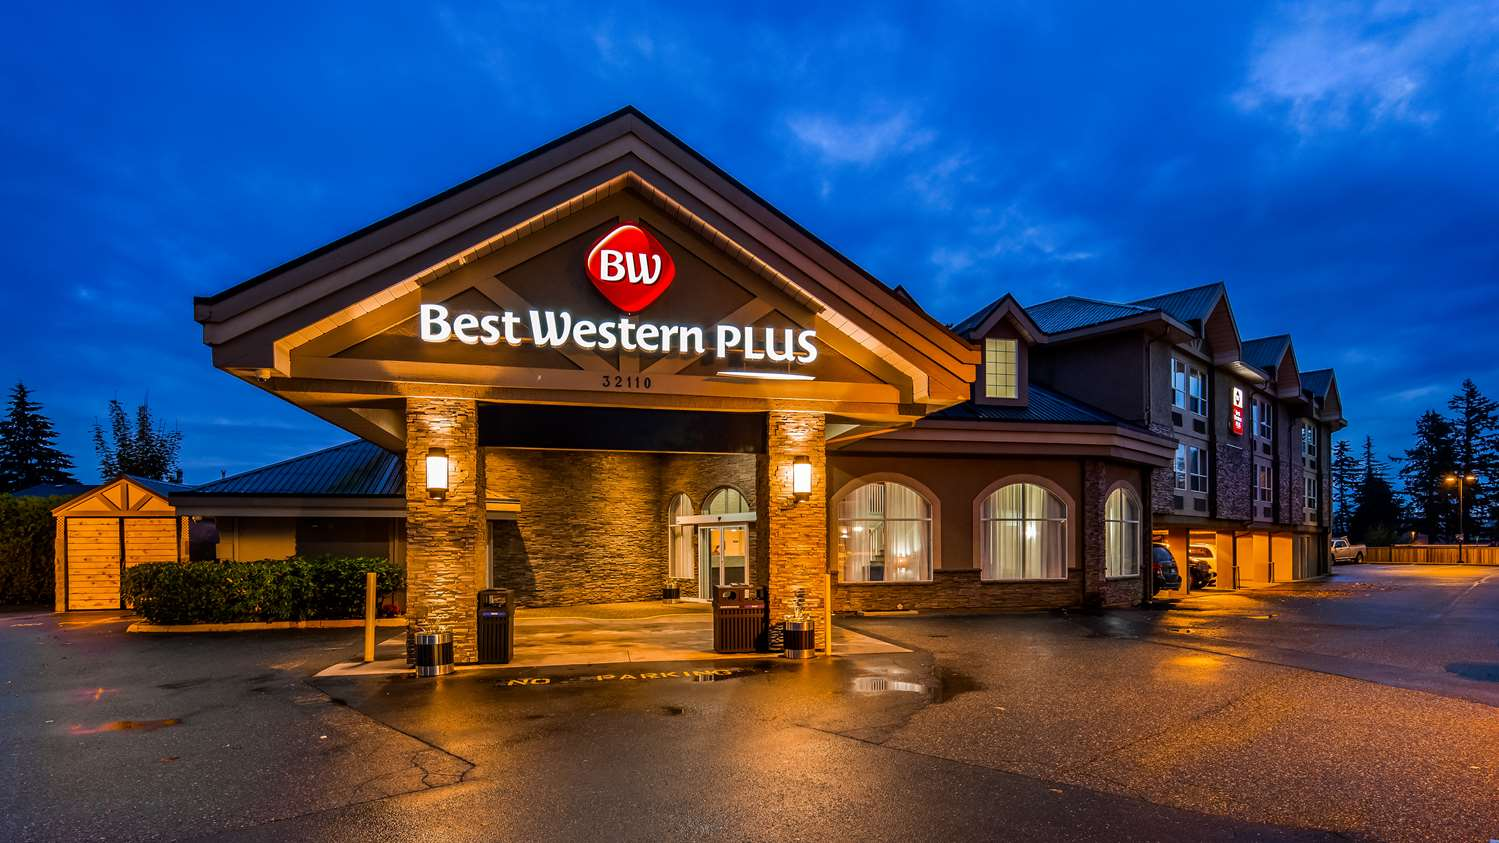 Best Western Plus Regency Inn Abbotsford